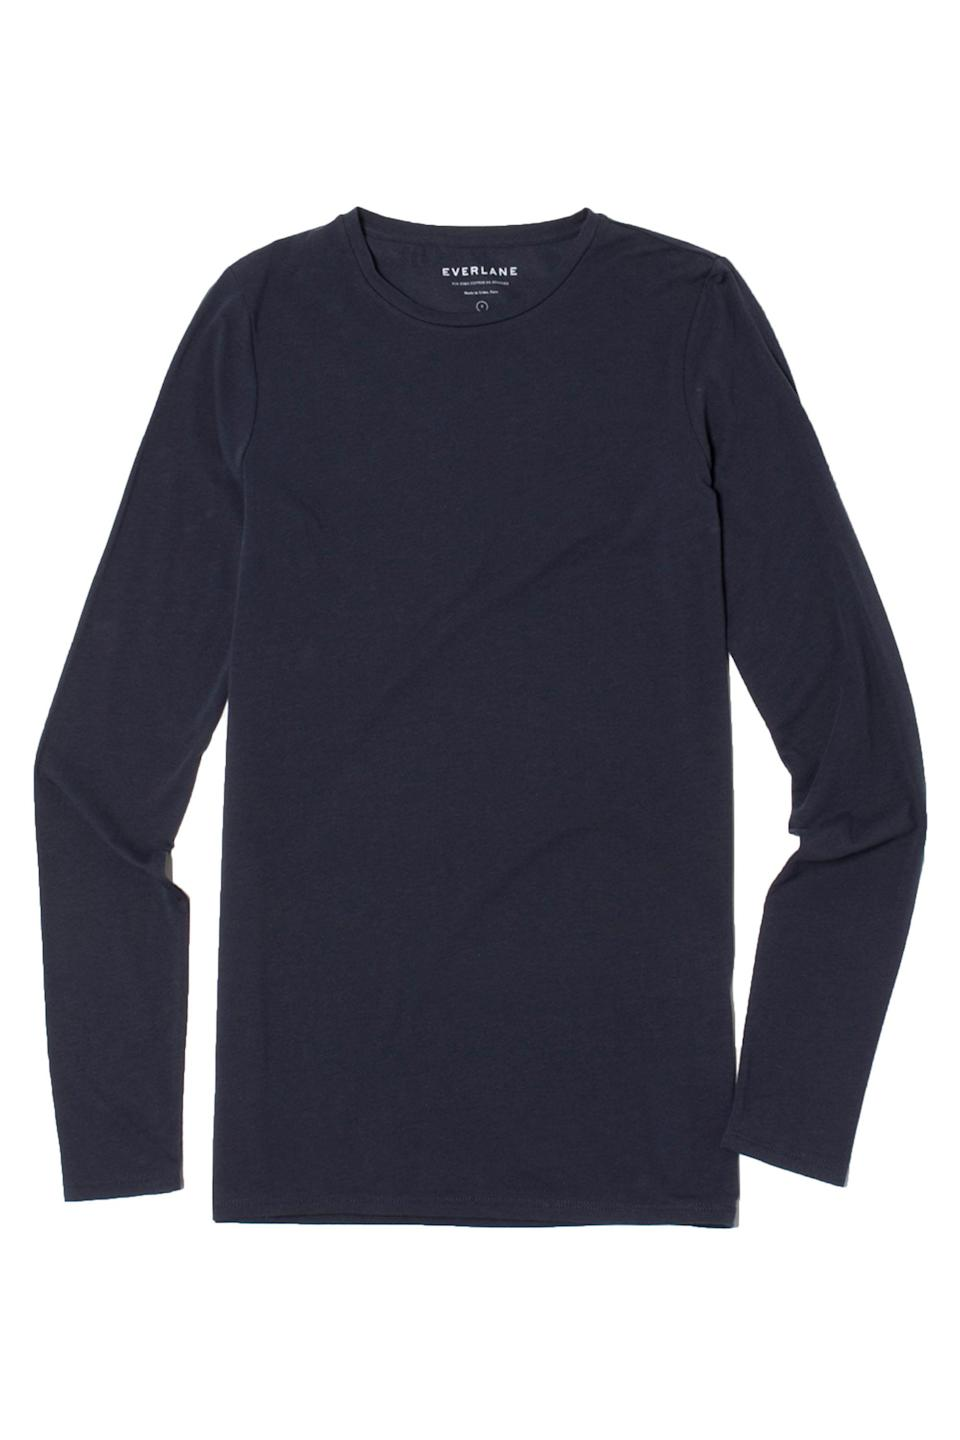 "<p><strong>Everlane</strong></p><p>nordstromrack.com</p><p><strong>$15.97</strong></p><p><a href=""https://go.redirectingat.com?id=74968X1596630&url=https%3A%2F%2Fwww.nordstromrack.com%2Fevents%2F387347%2Fproducts%2F3236205&sref=https%3A%2F%2Fwww.marieclaire.com%2Ffashion%2Fg33474736%2Feverlane-nordstrom-rack-sale%2F"" rel=""nofollow noopener"" target=""_blank"" data-ylk=""slk:SHOP IT"" class=""link rapid-noclick-resp"">SHOP IT</a></p><p><strong><del>$32</del> $15.97 (50% off) </strong></p><p>Soft and flattering. Enough said. </p>"